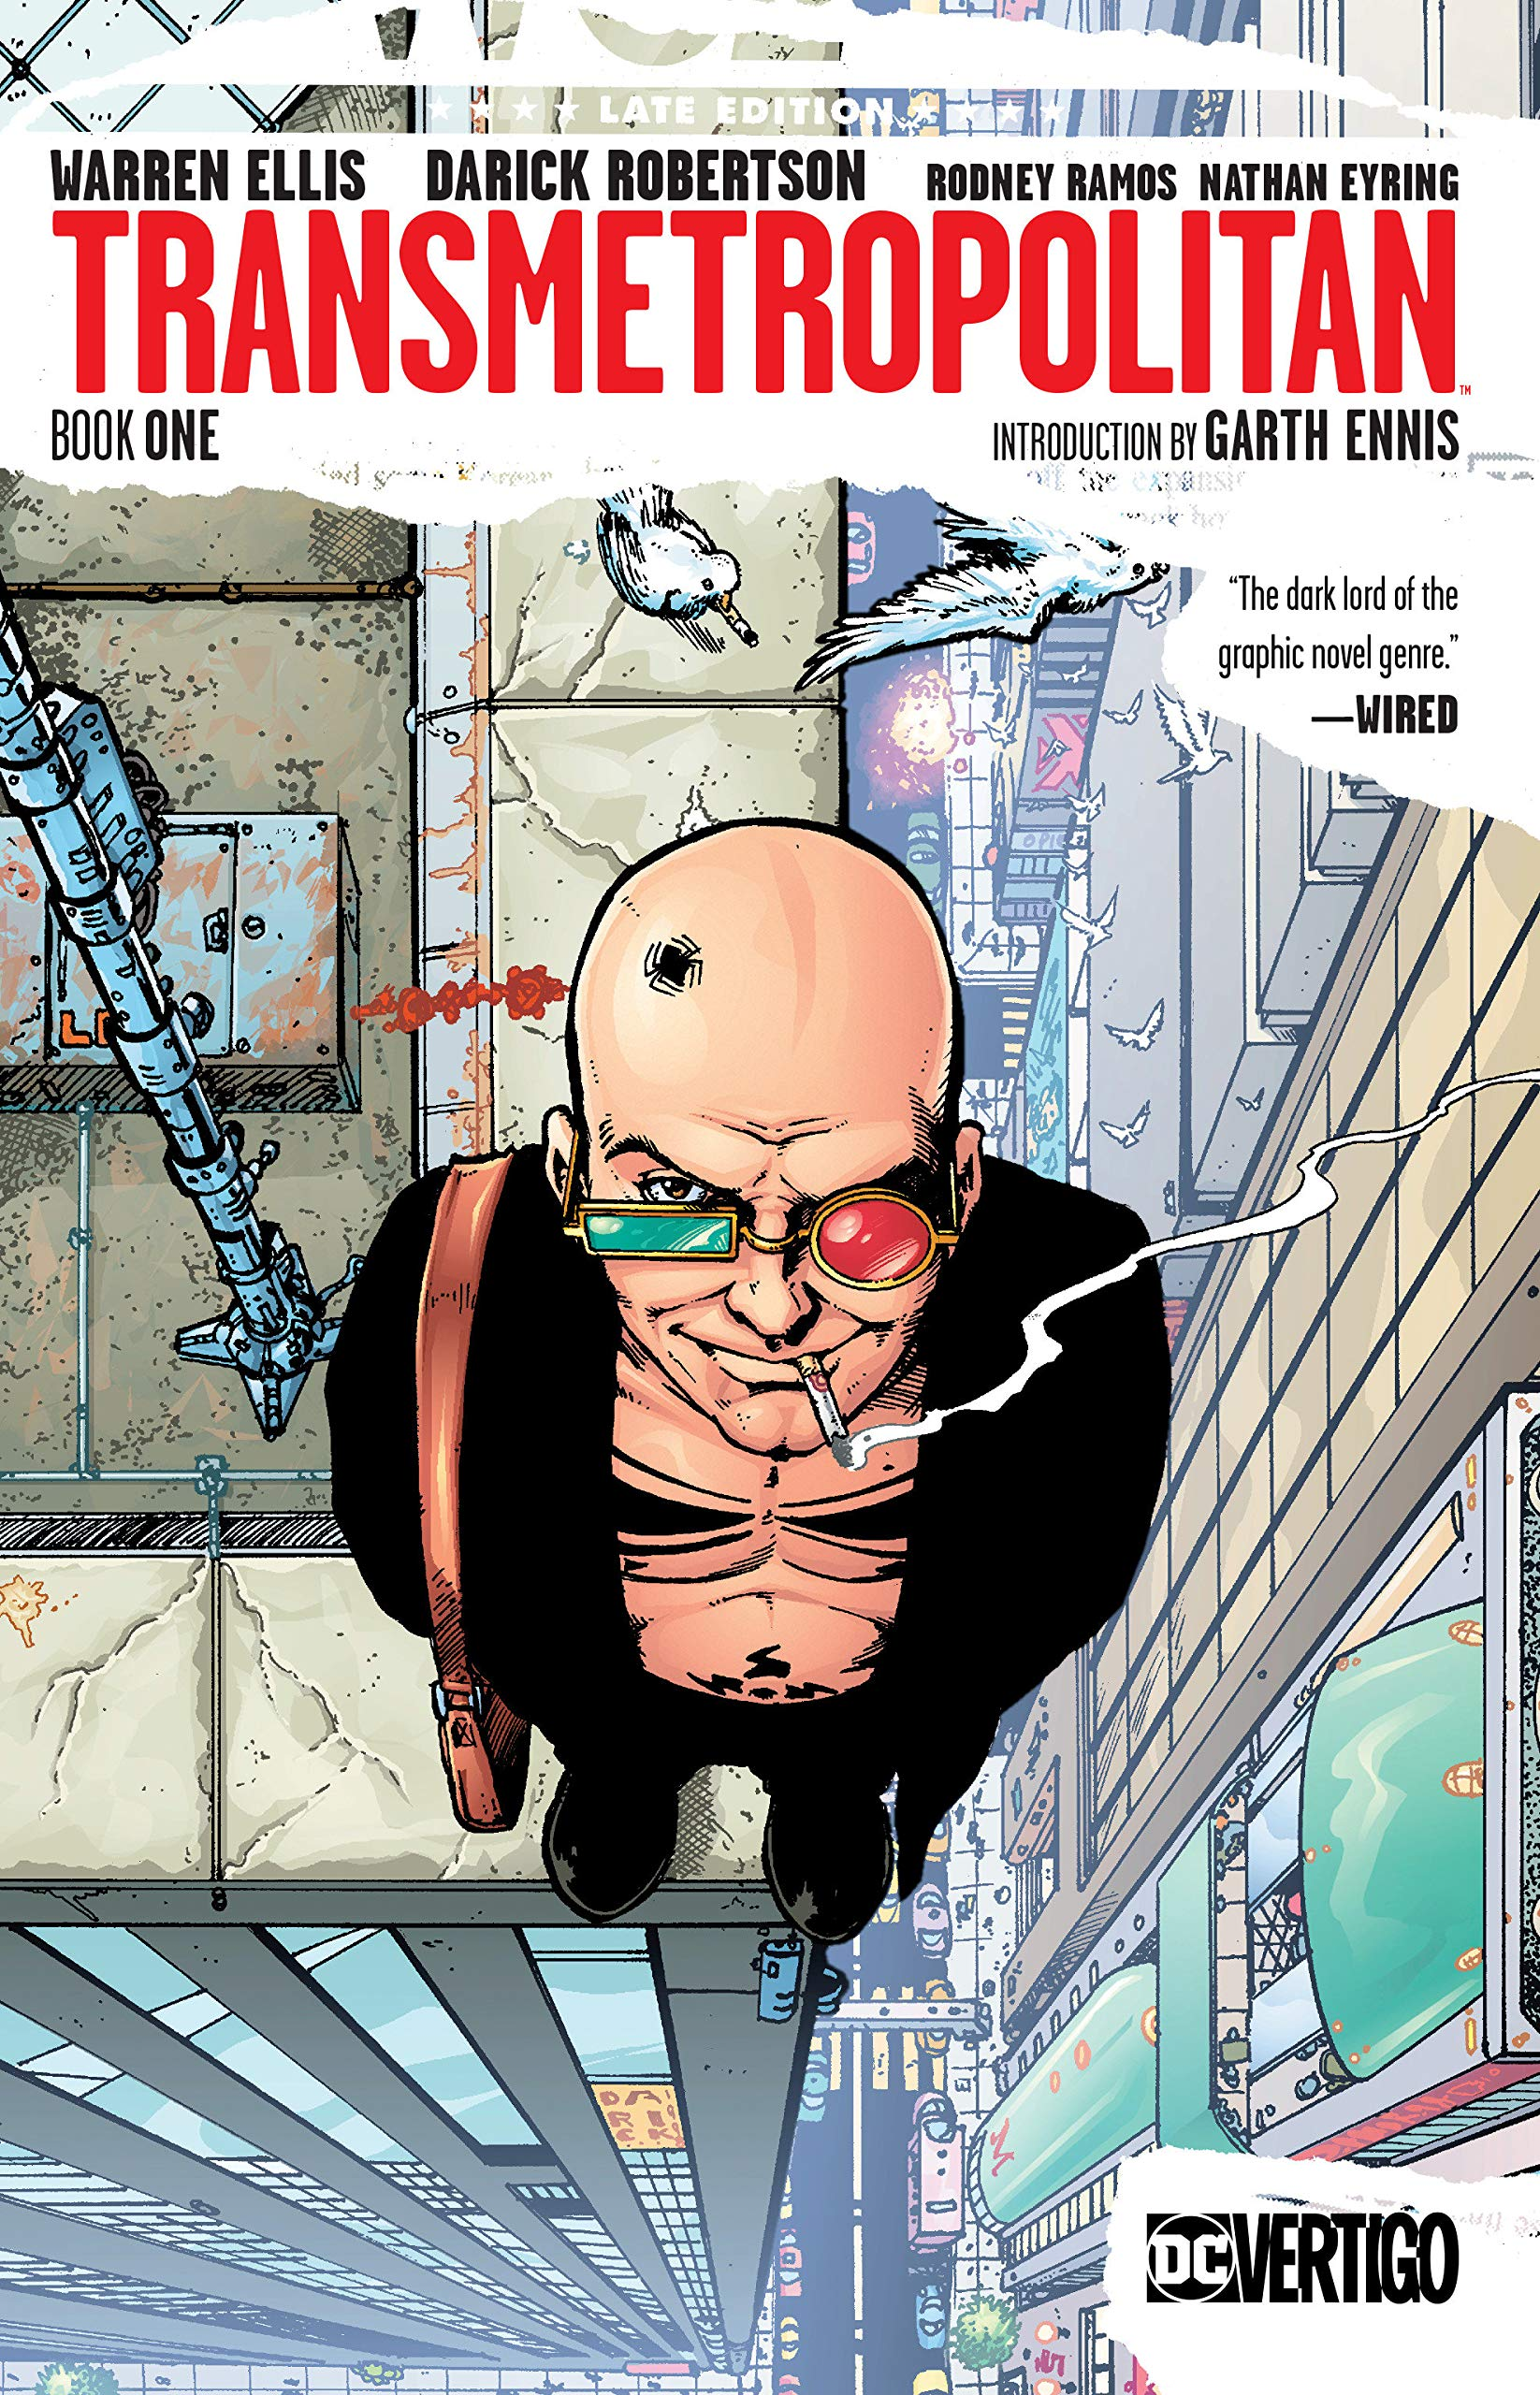 Vertigo: Not just the publishing line, but also the feeling you get looking at this cover.